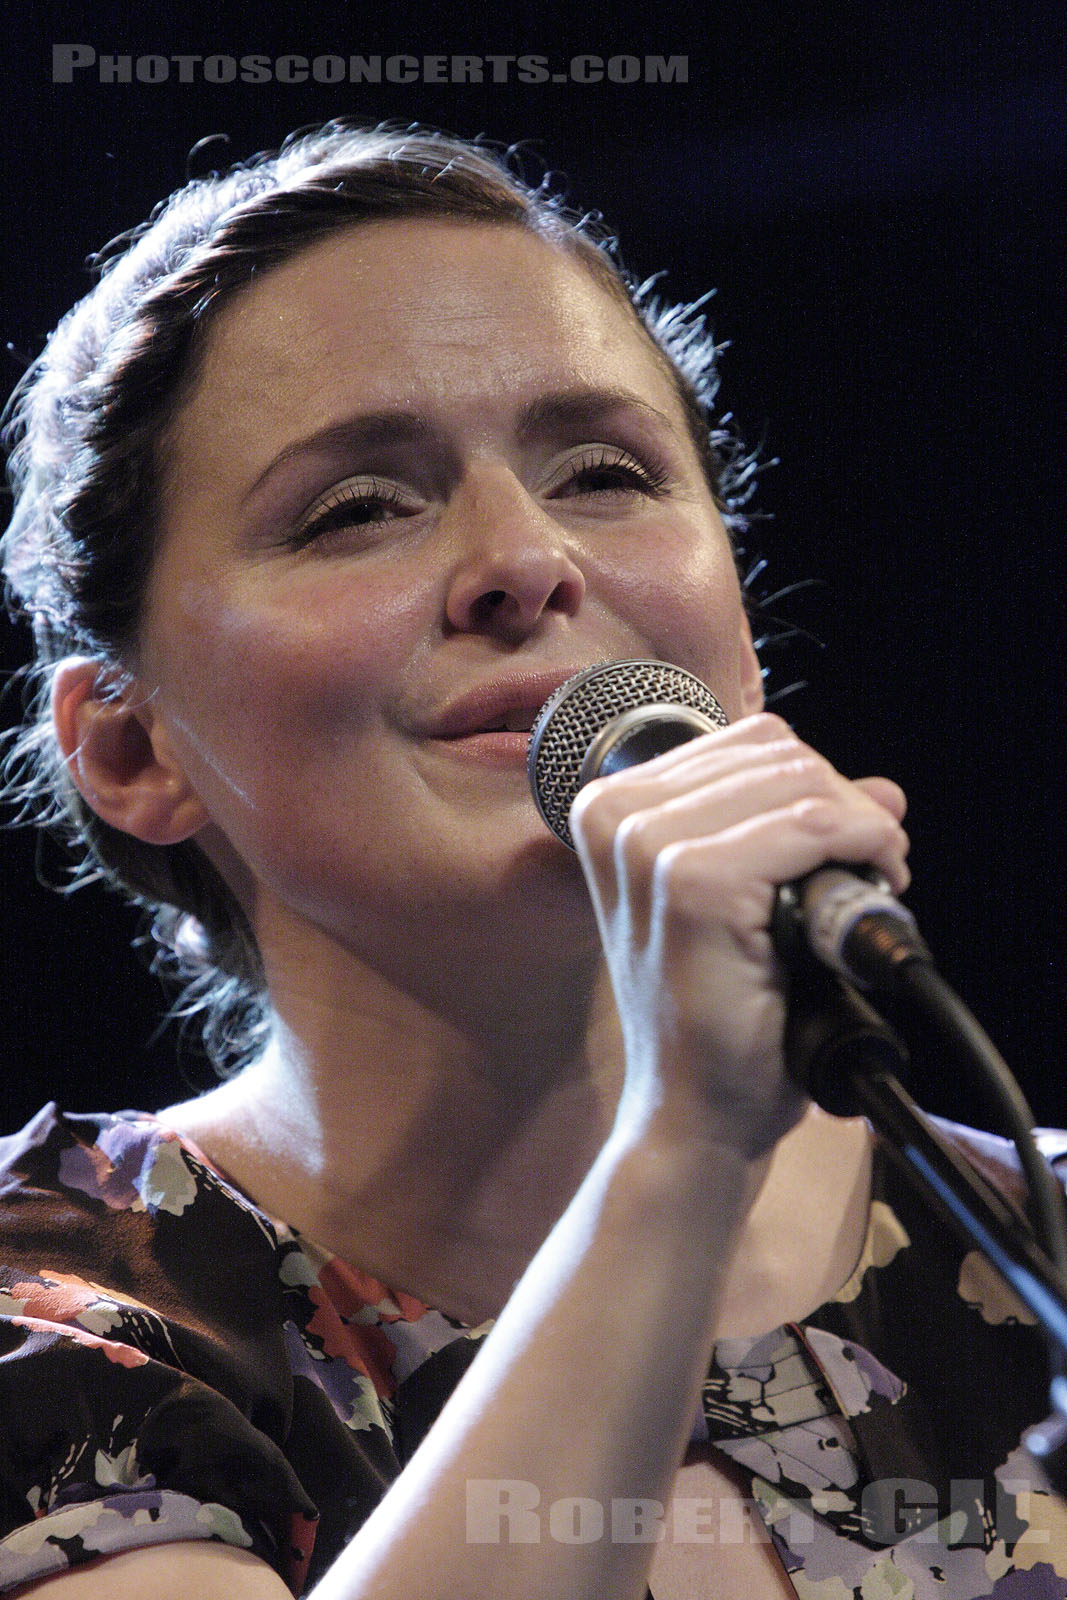 EMILIANA TORRINI - 2008-10-14 - PARIS - Trabendo